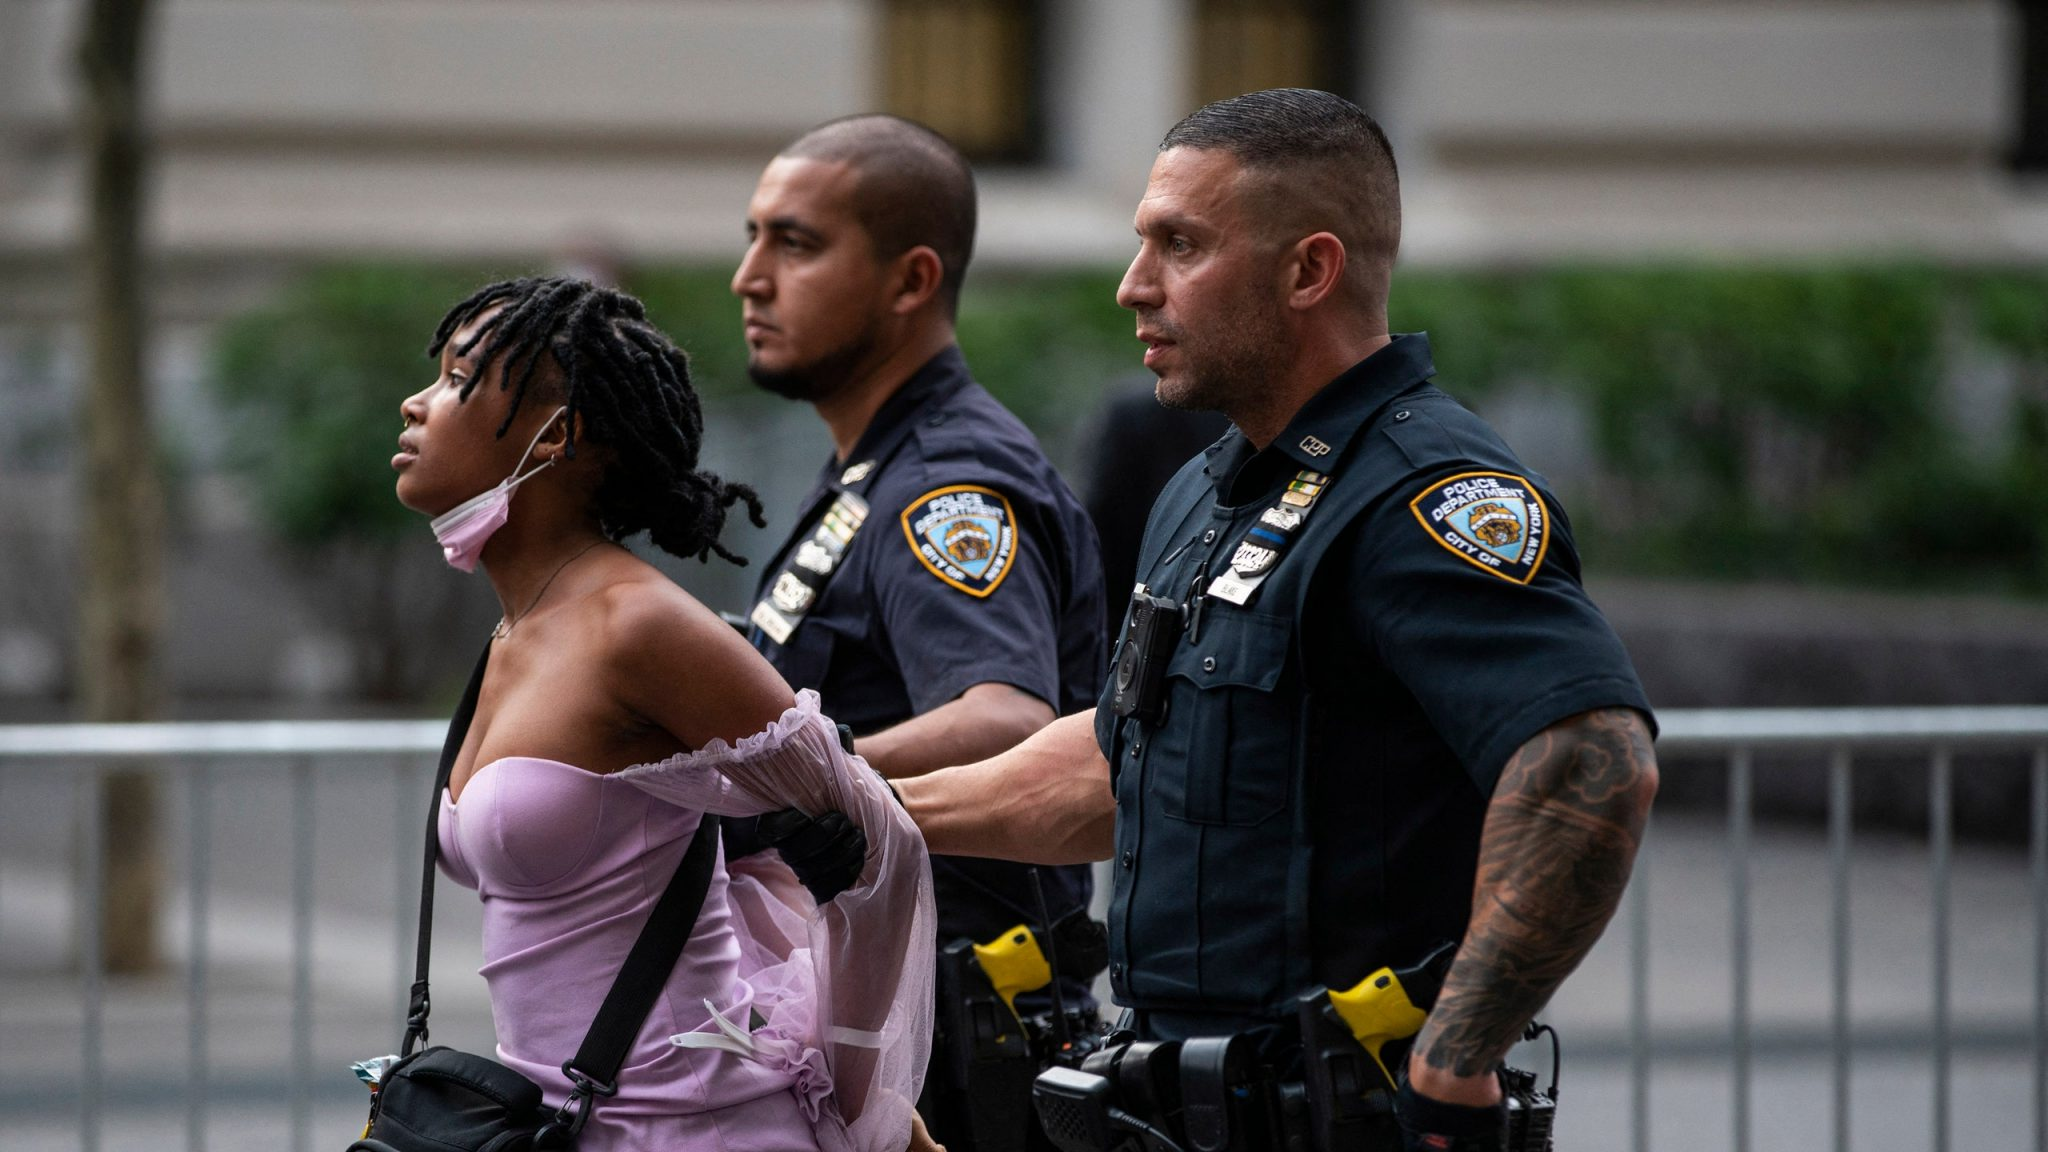 A black person wearing a purple shirt with a black crossbody bag is being restrained by two police officers.